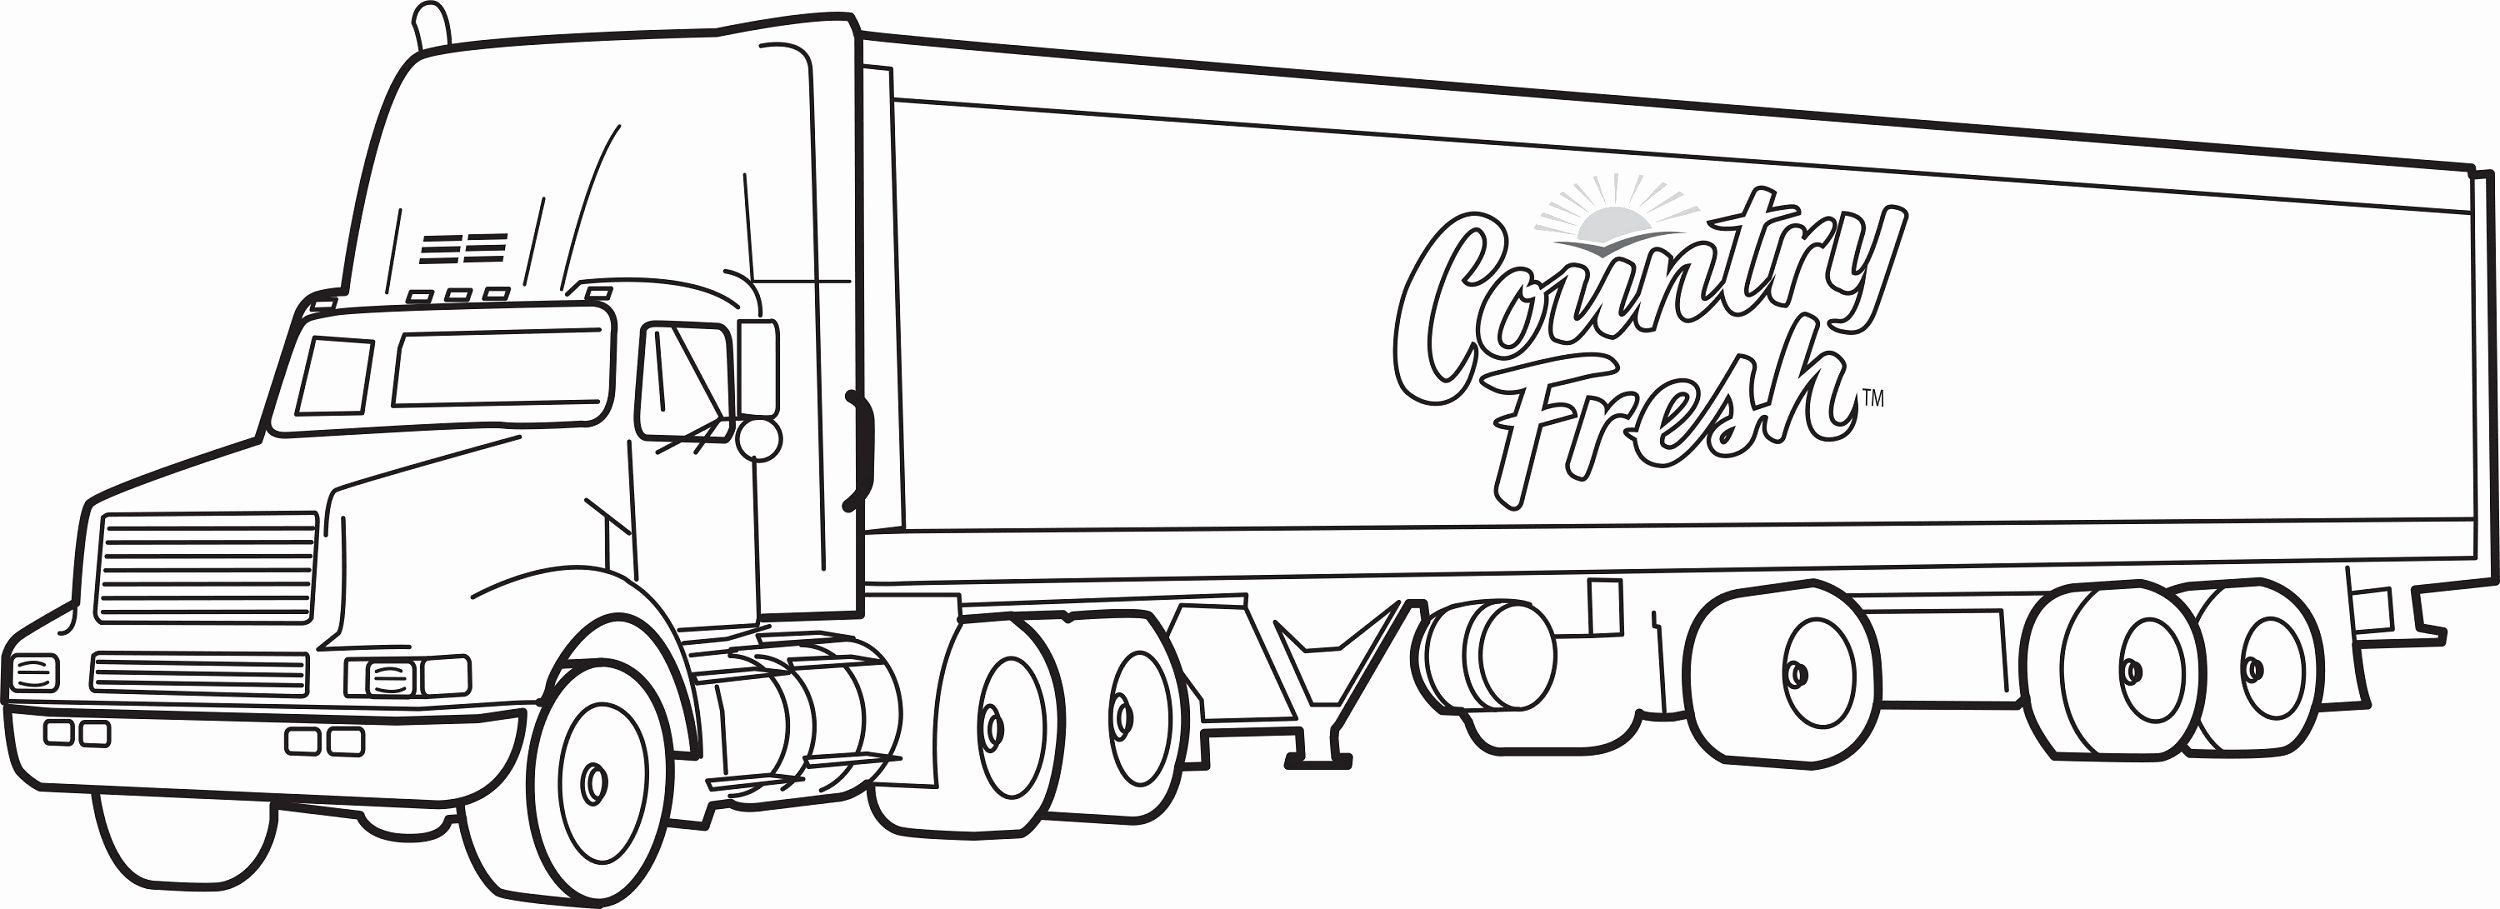 Transport Vehicles Coloring Page Elegant Semi Truck Coloring Pages Beautiful Big Trucks For Kid Truck Coloring Pages Tractor Coloring Pages Cars Coloring Pages